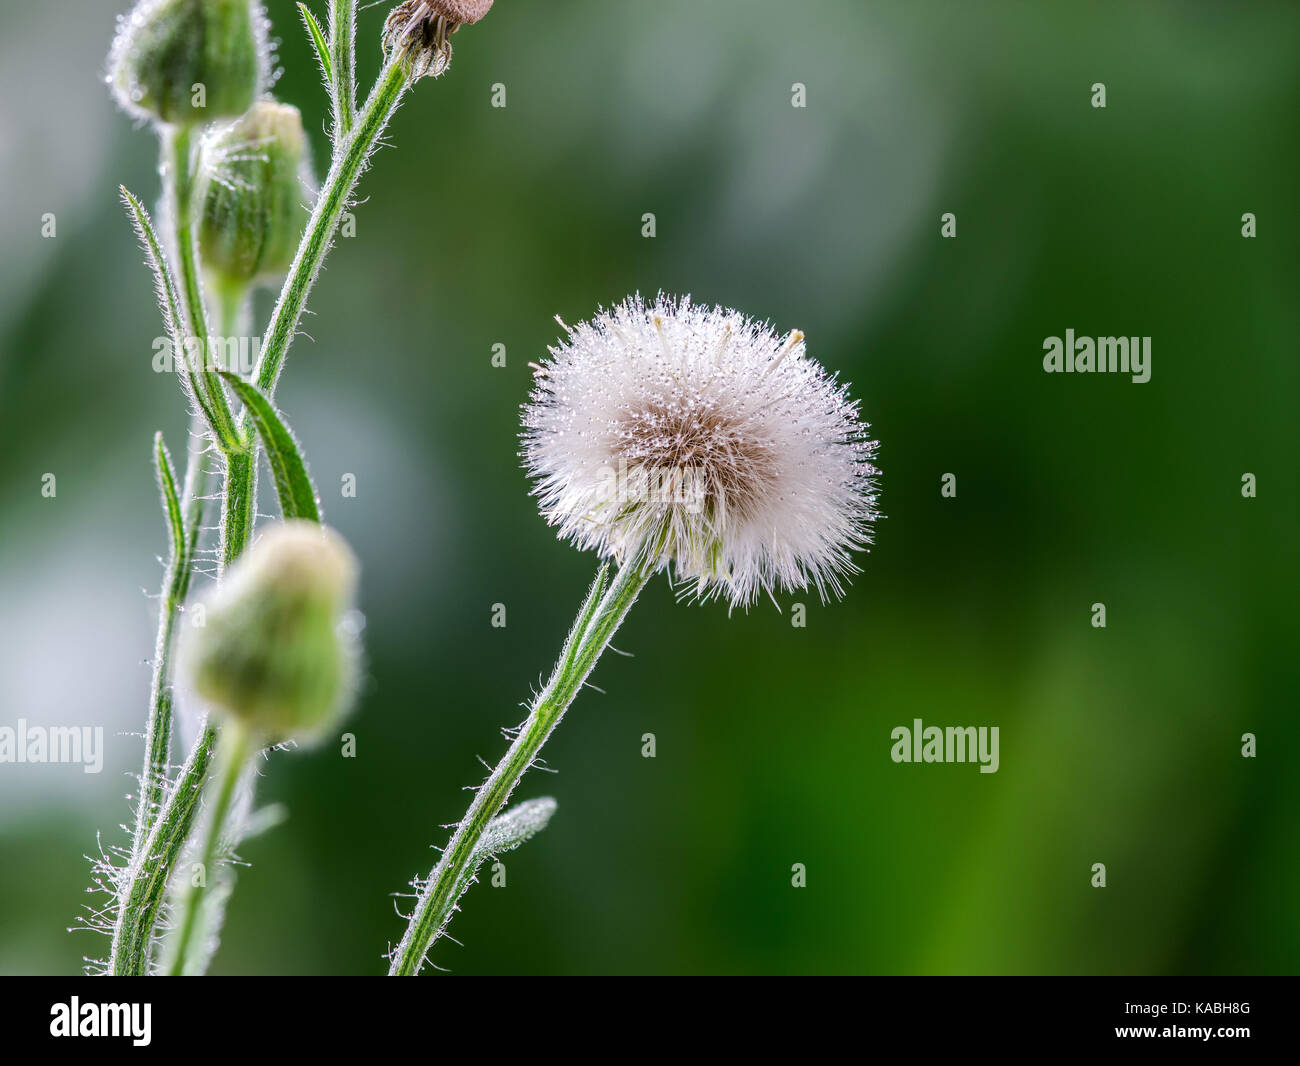 Macro closeup of a white dandelion flower head and seeds on a green macro closeup of a white dandelion flower head and seeds on a green background showing many rain water droplets on the flower seeds and petals mightylinksfo